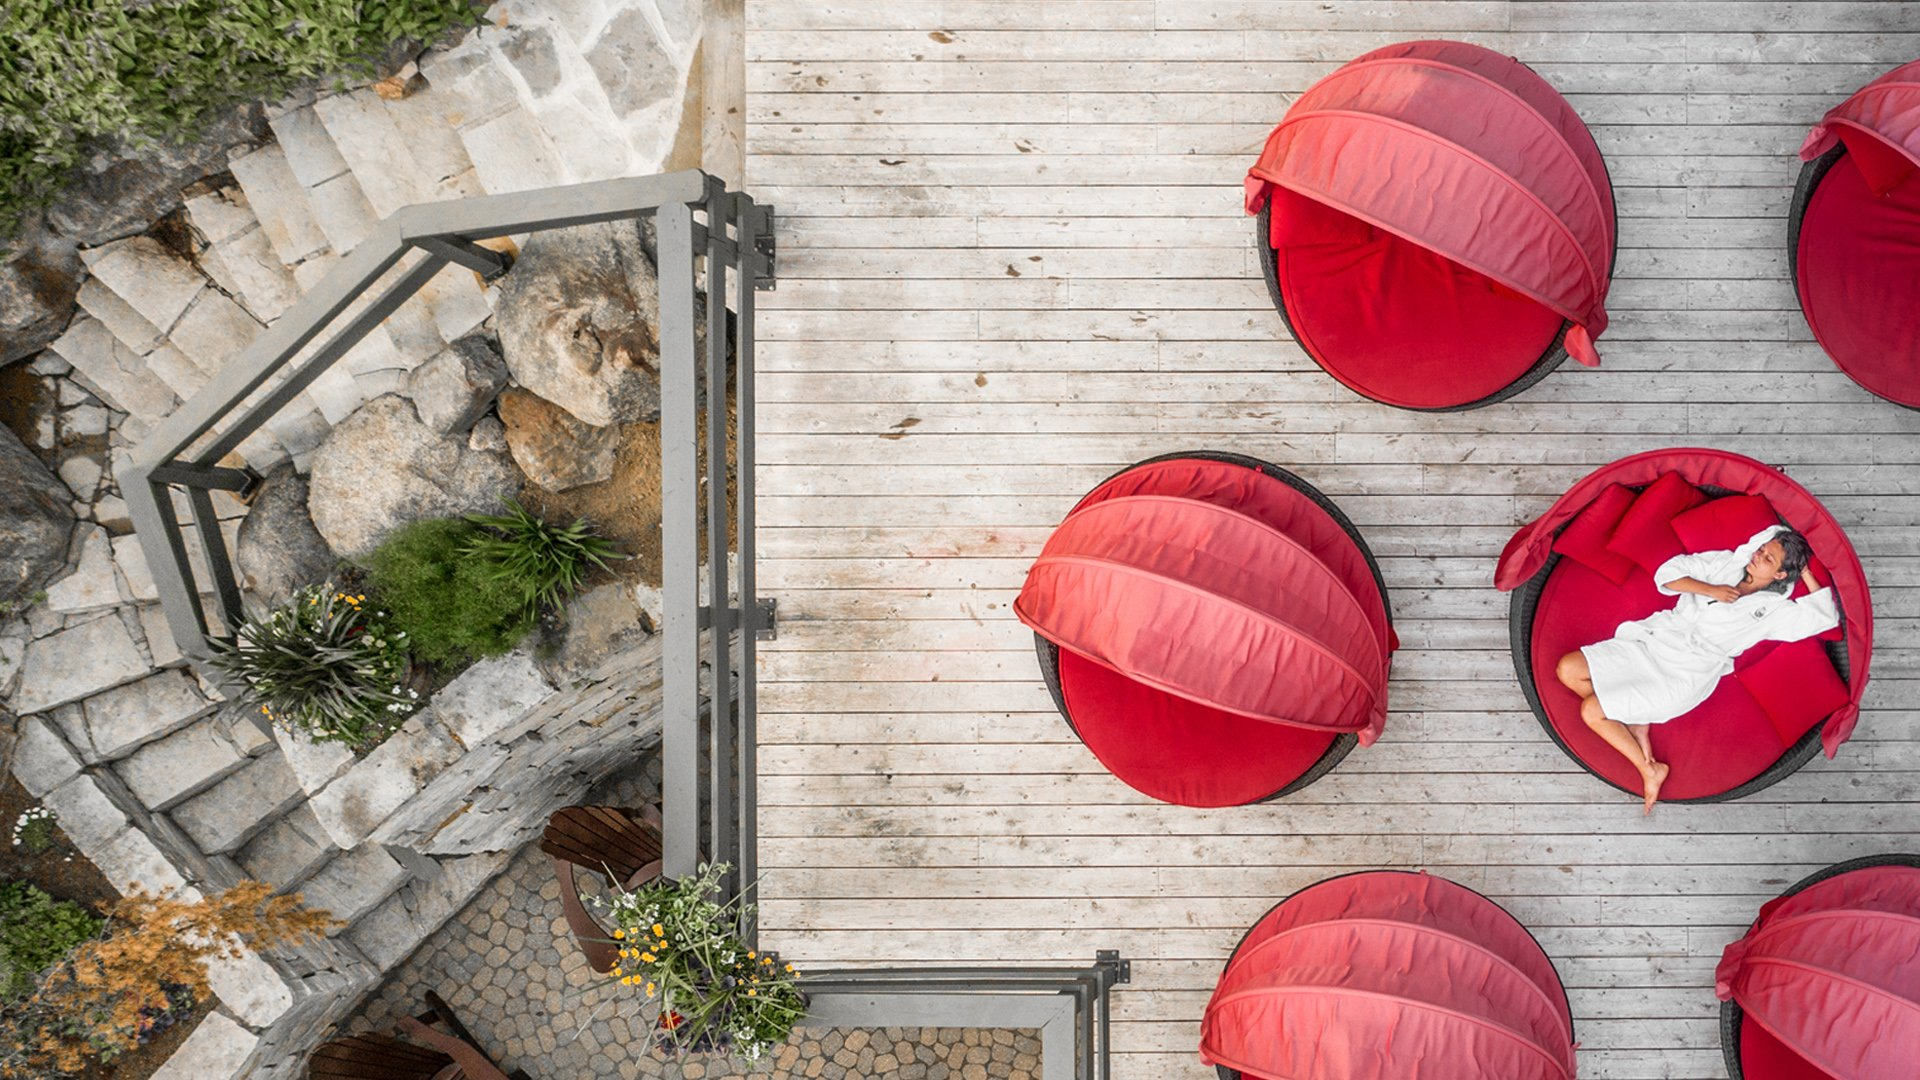 Red outdoor loungers at the Scandinave Spa